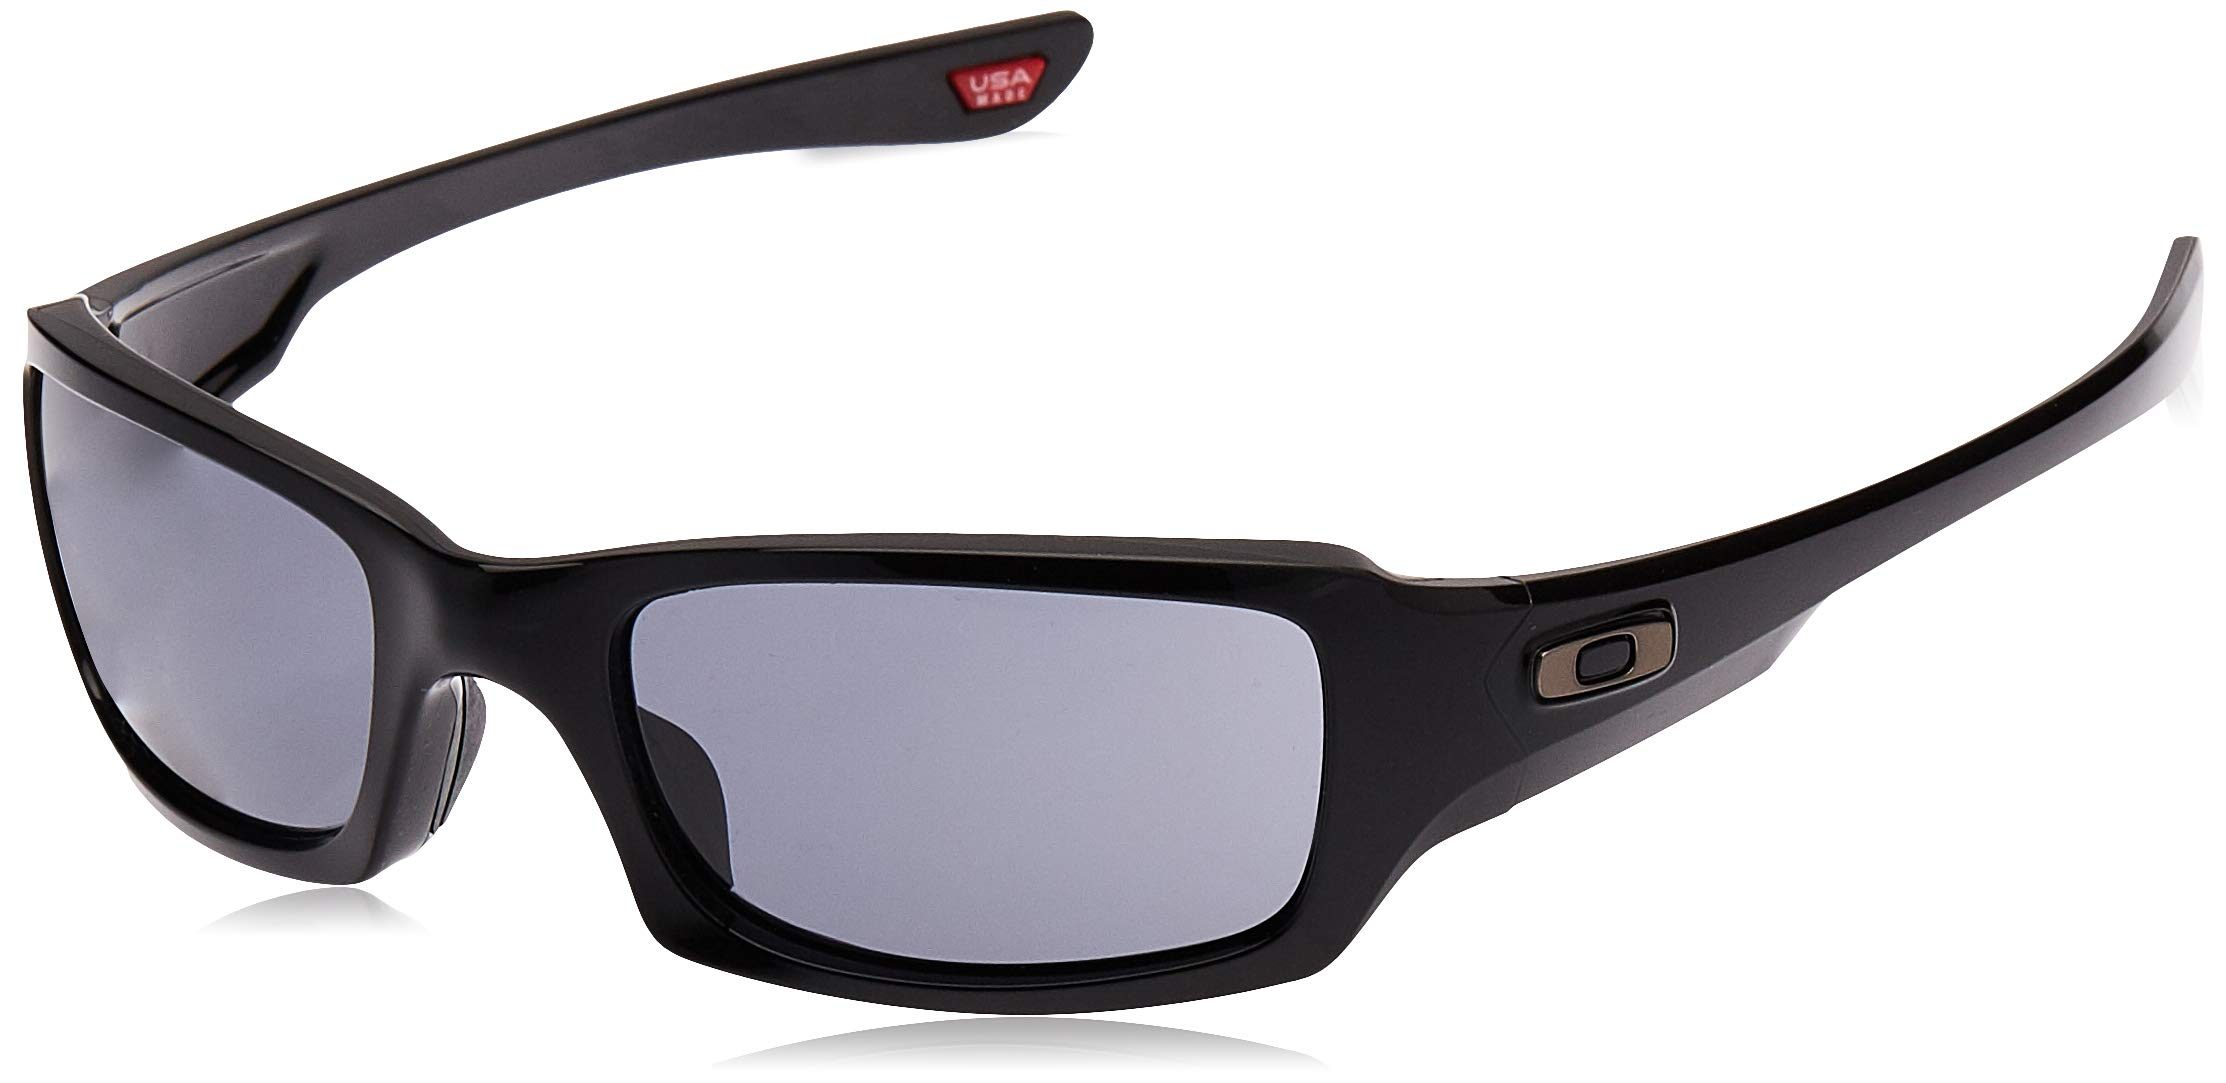 Oakley Men's OO9238 Fives Squared Rectangular Sunglasses, Polished Black/Grey, 54 mm by Oakley